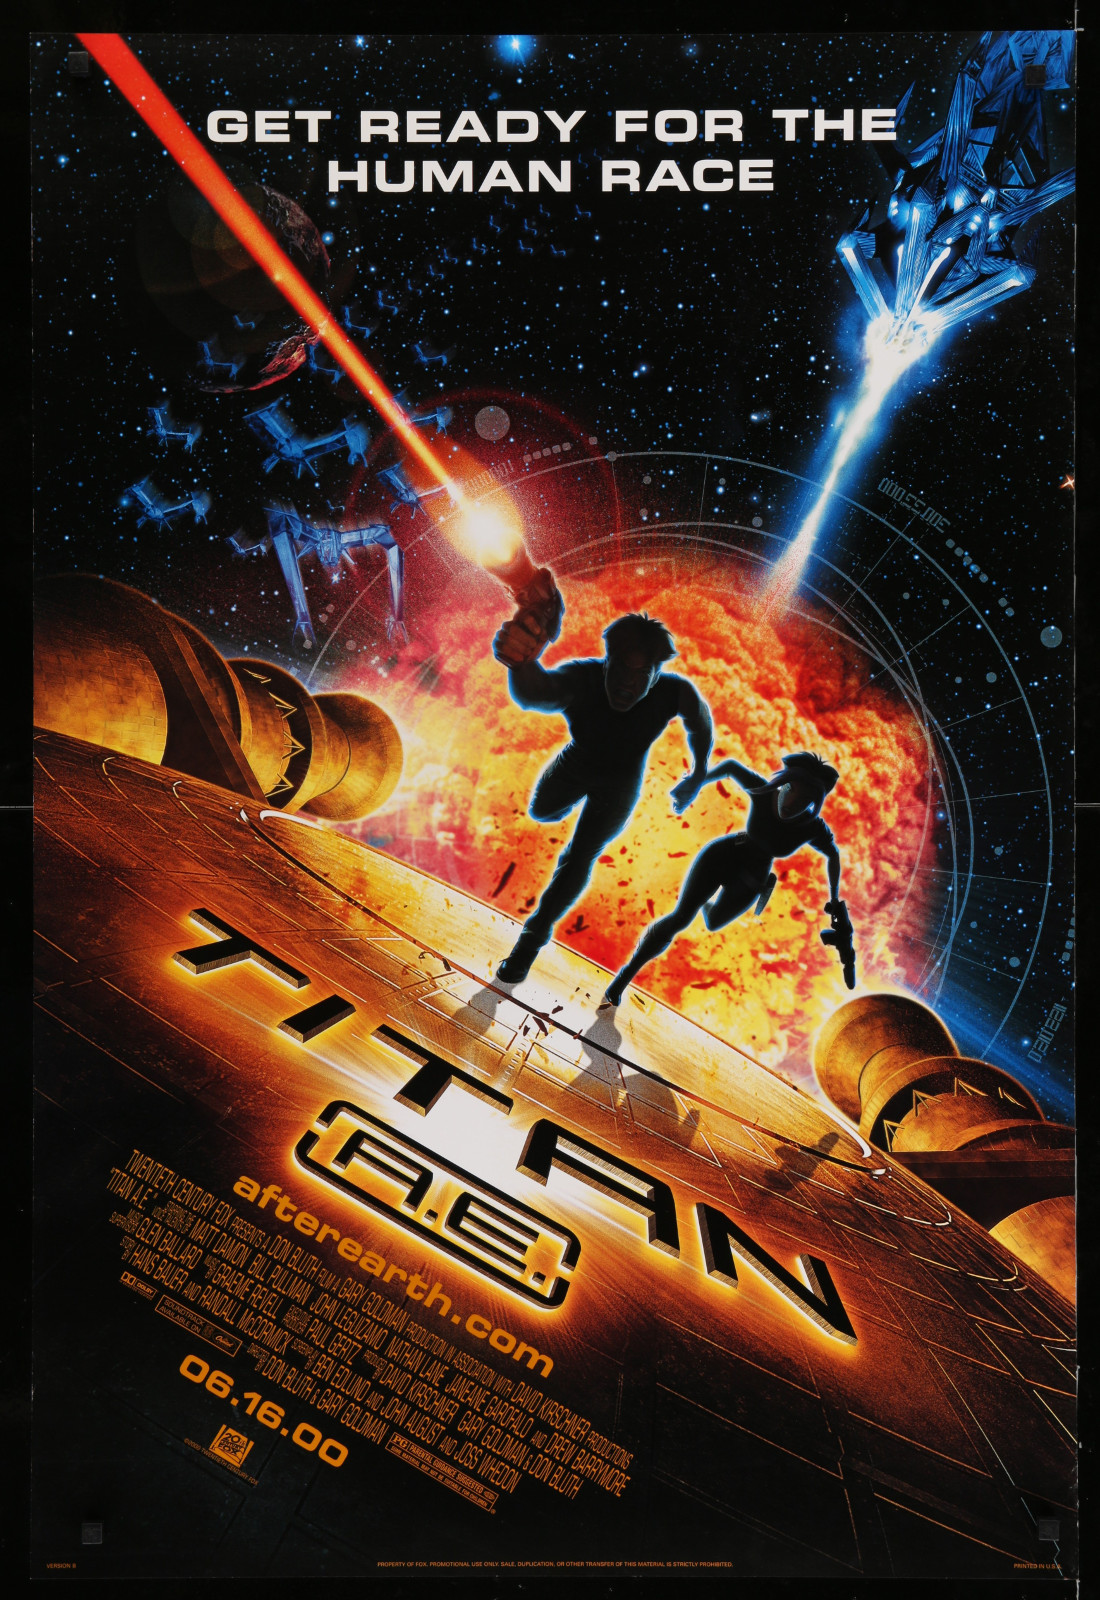 Titan A.E. 2A366 A Part Of A Lot 29 Unfolded Double-Sided 27X40 One-Sheets '90S-00S Great Movie Images!